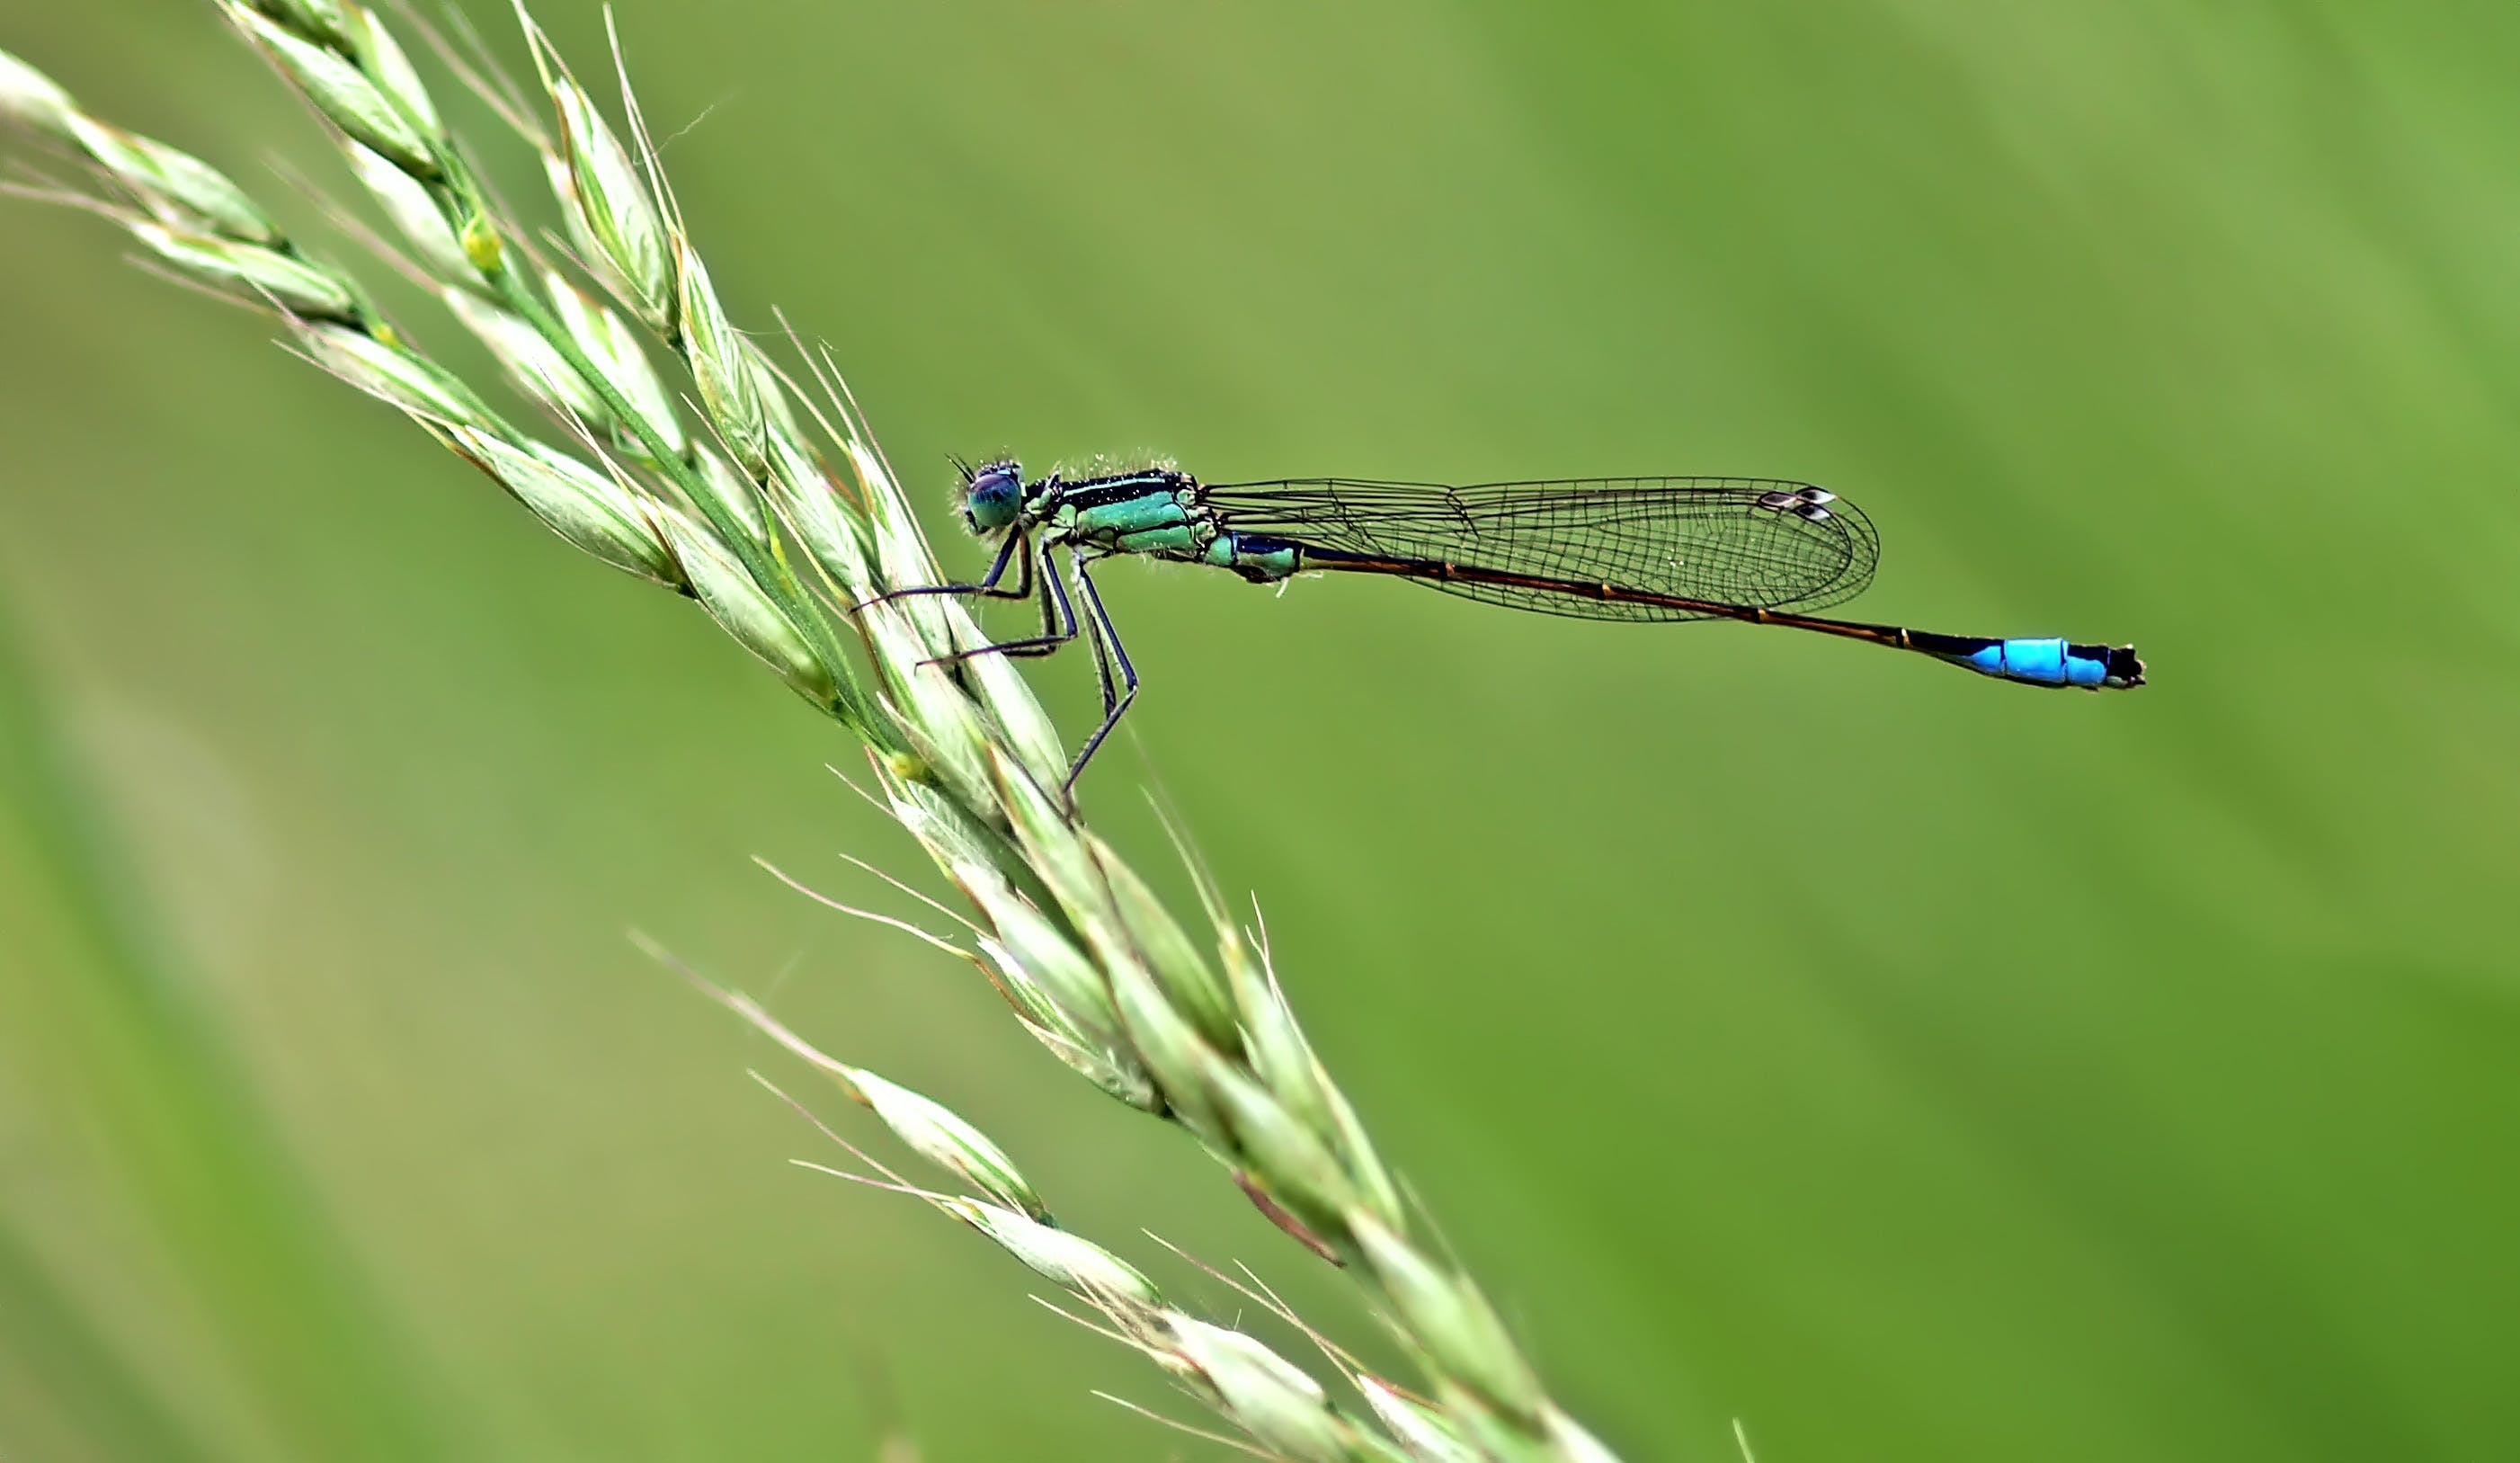 damselfly, grass, insect